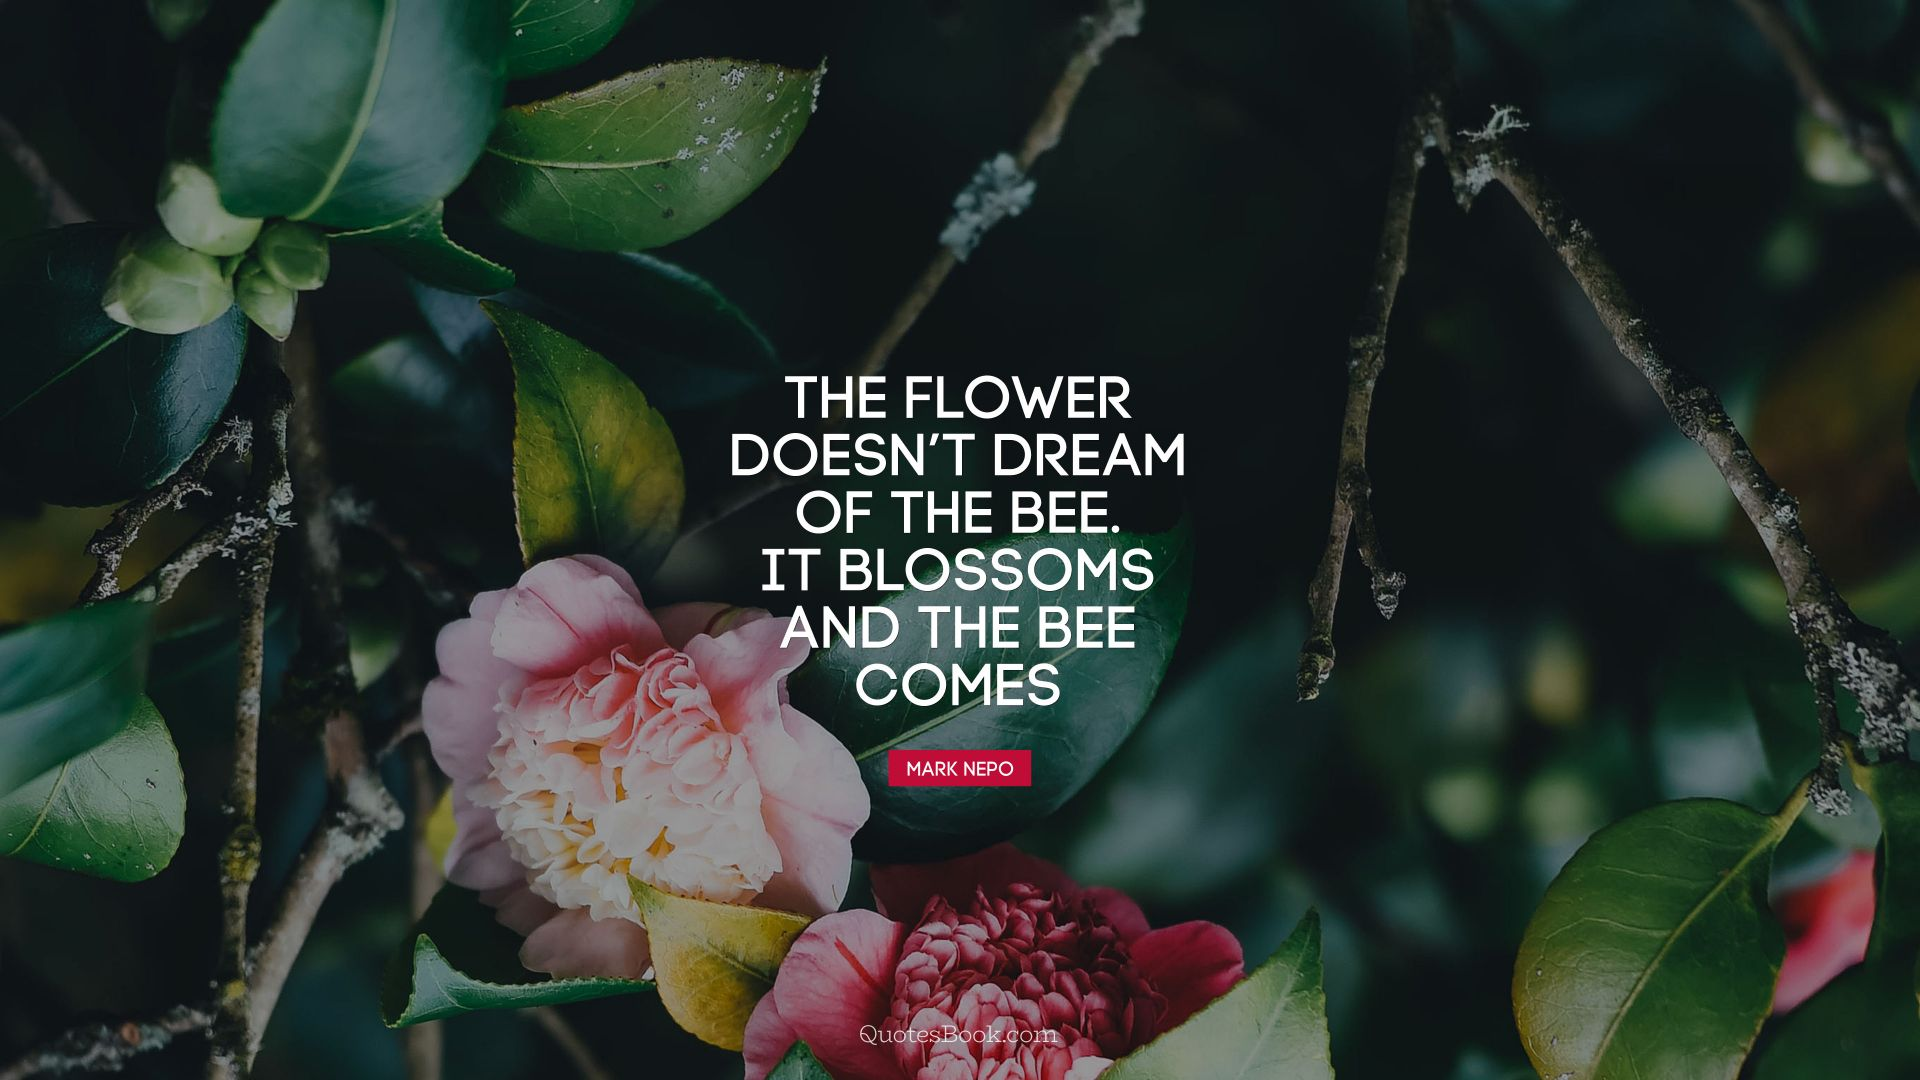 The flower doesn't dream of the bee. It blossoms and the bee comes. - Quote by Mark Nepo